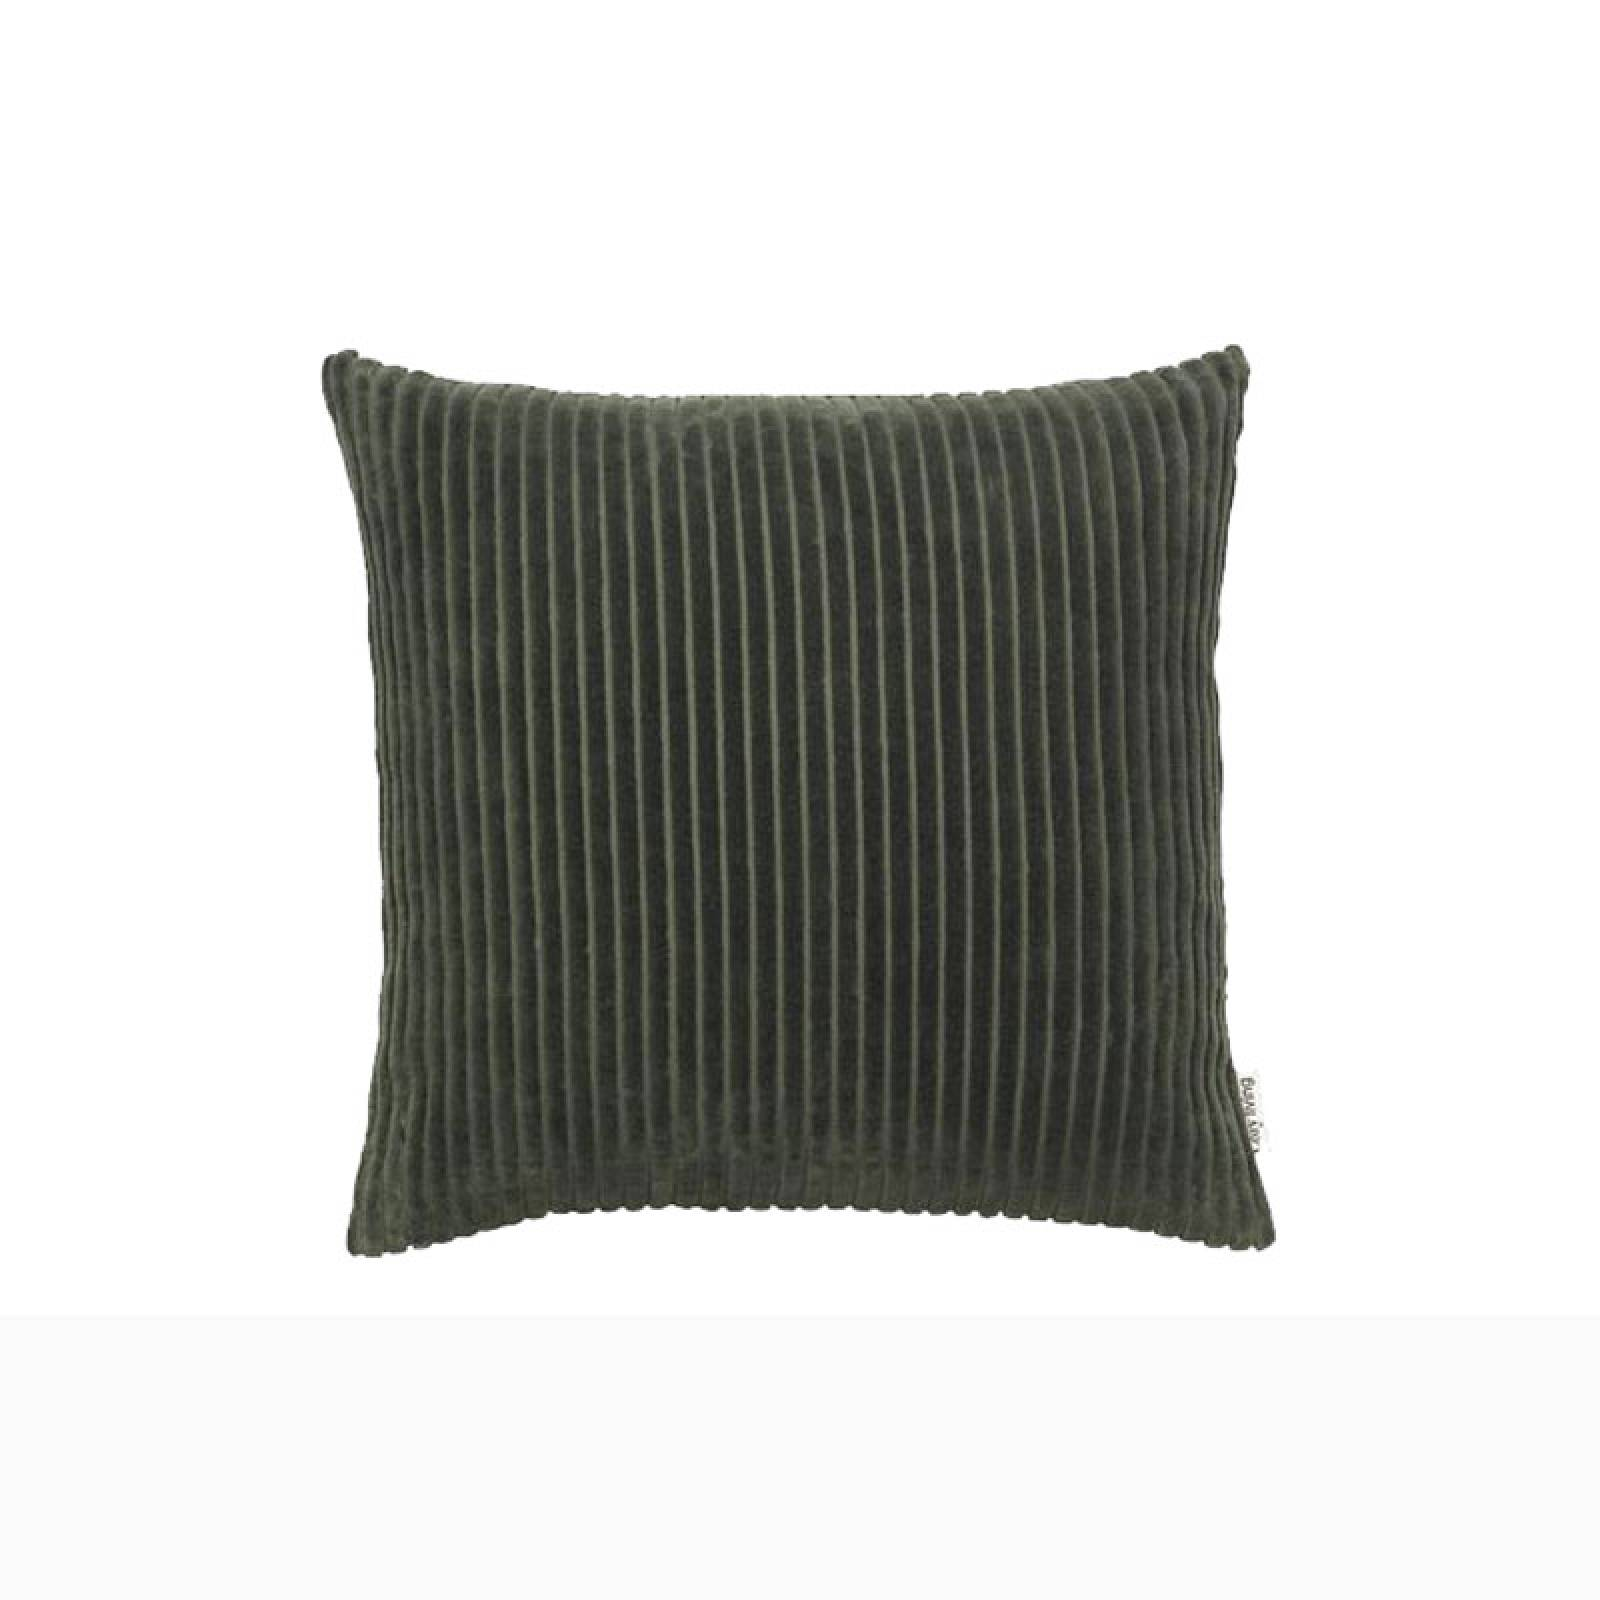 Square Soft Striped Cushion In Army